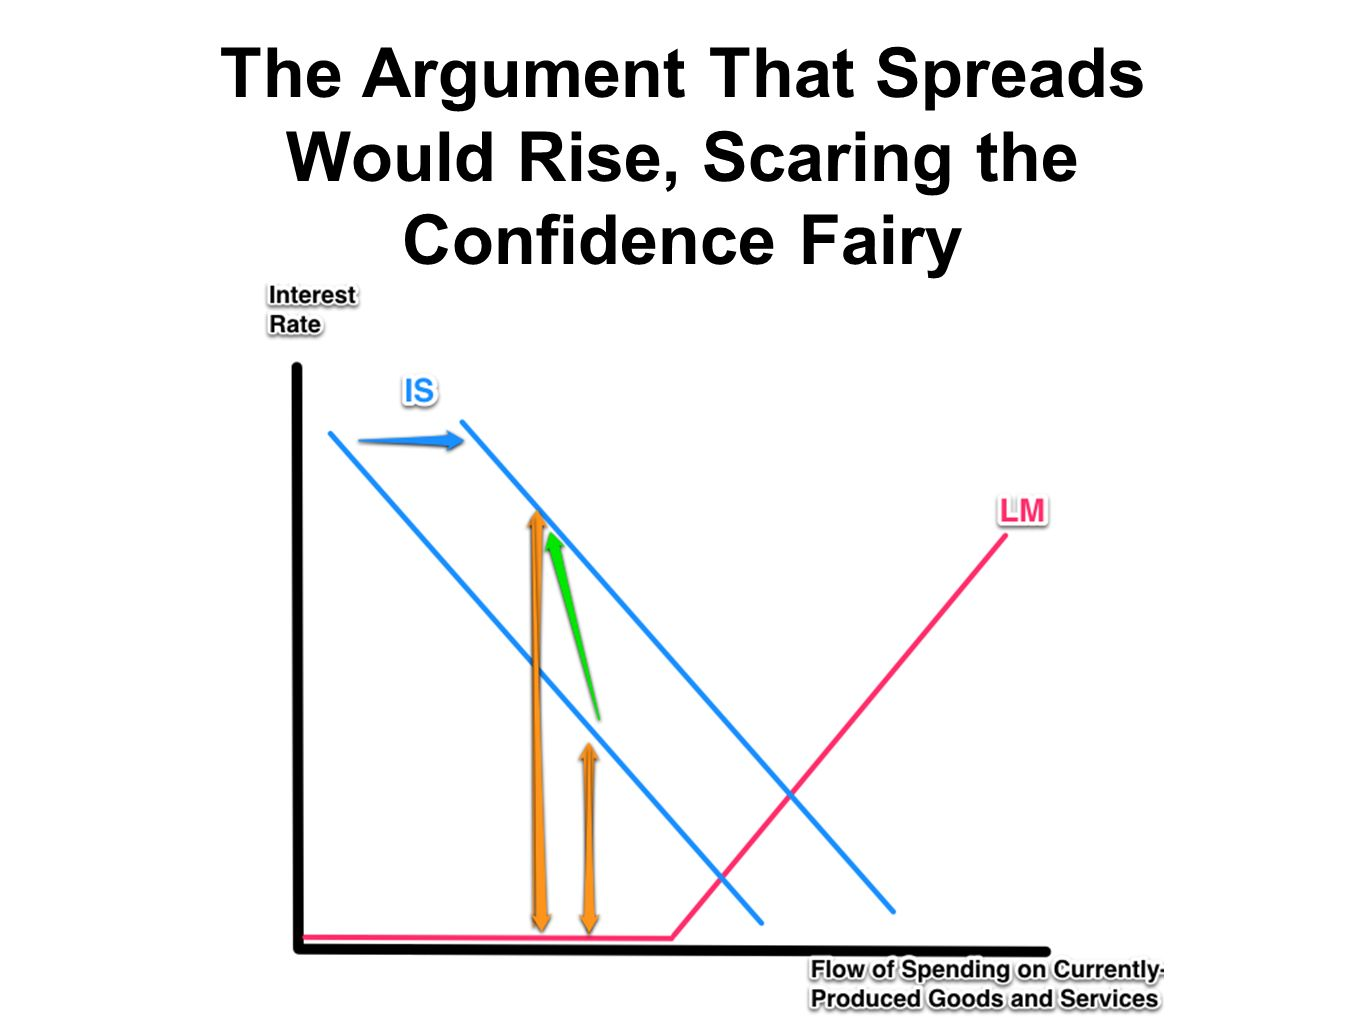 The Argument That Spreads Would Rise, Scaring the Confidence Fairy